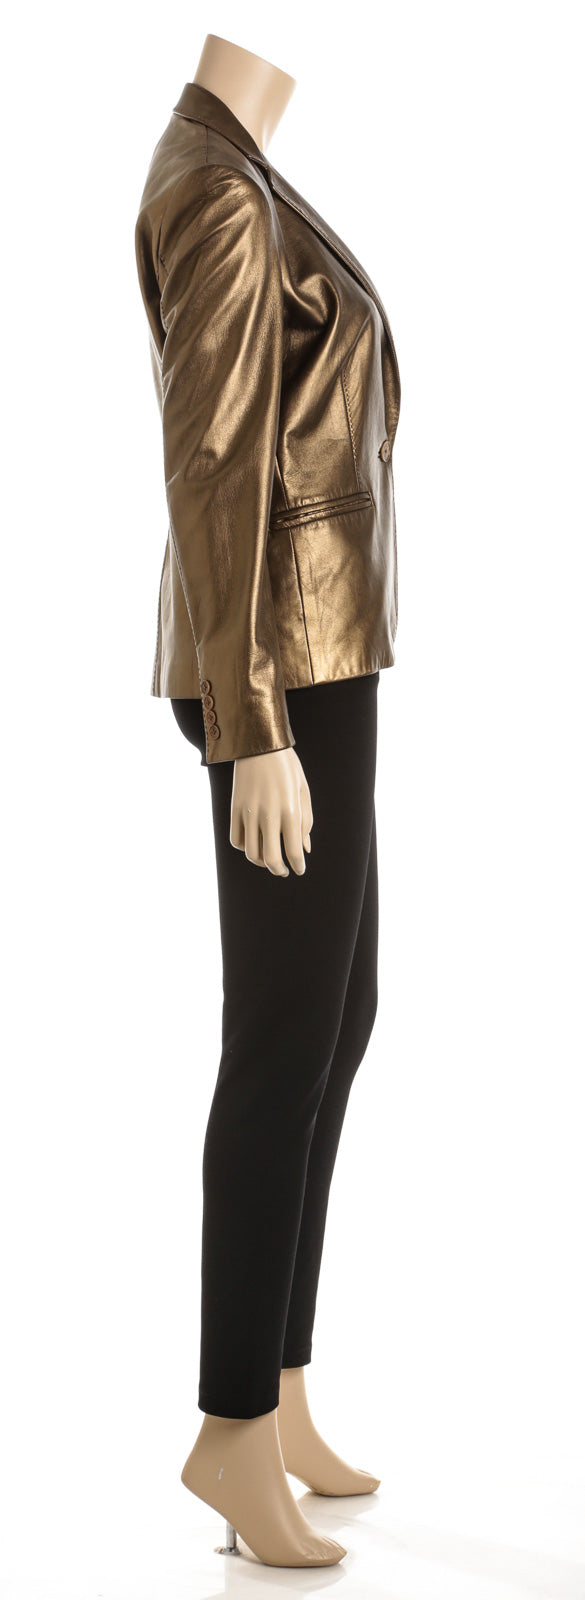 Ralph Lauren Purple Label Metallic Gold Leather Blazer (Size 6)